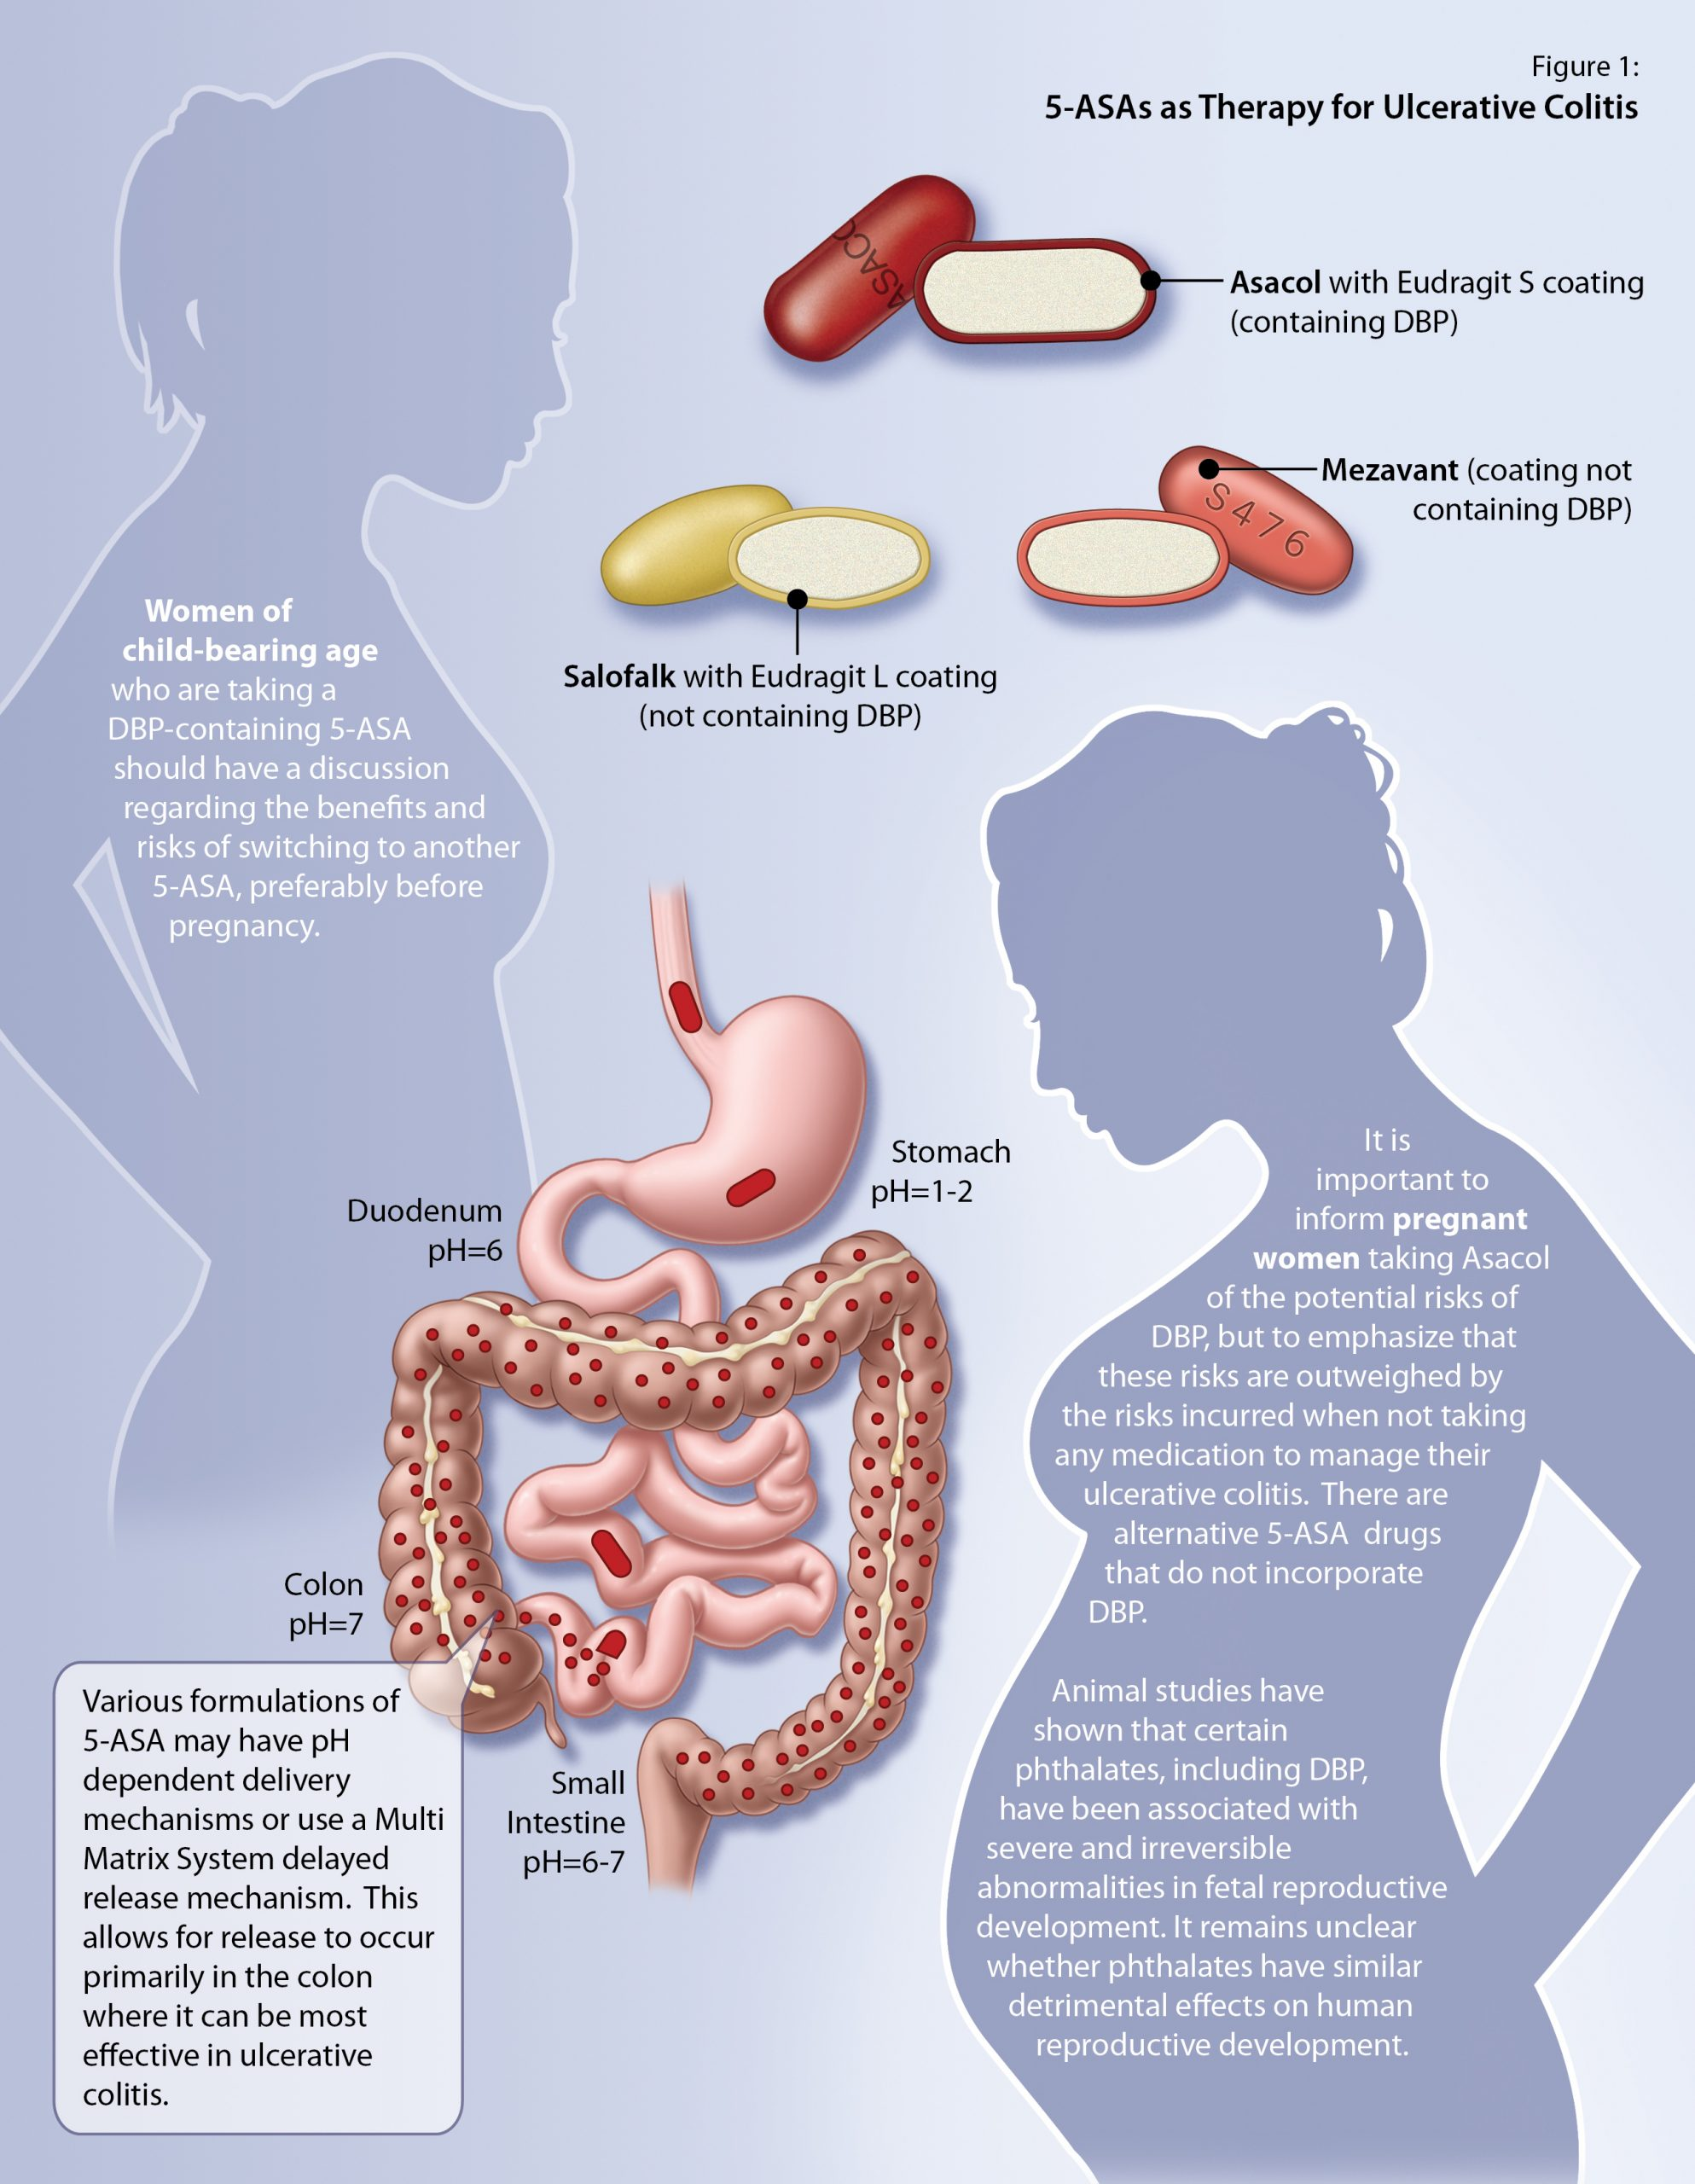 5-ASAs as therapy for ulcerative colitis